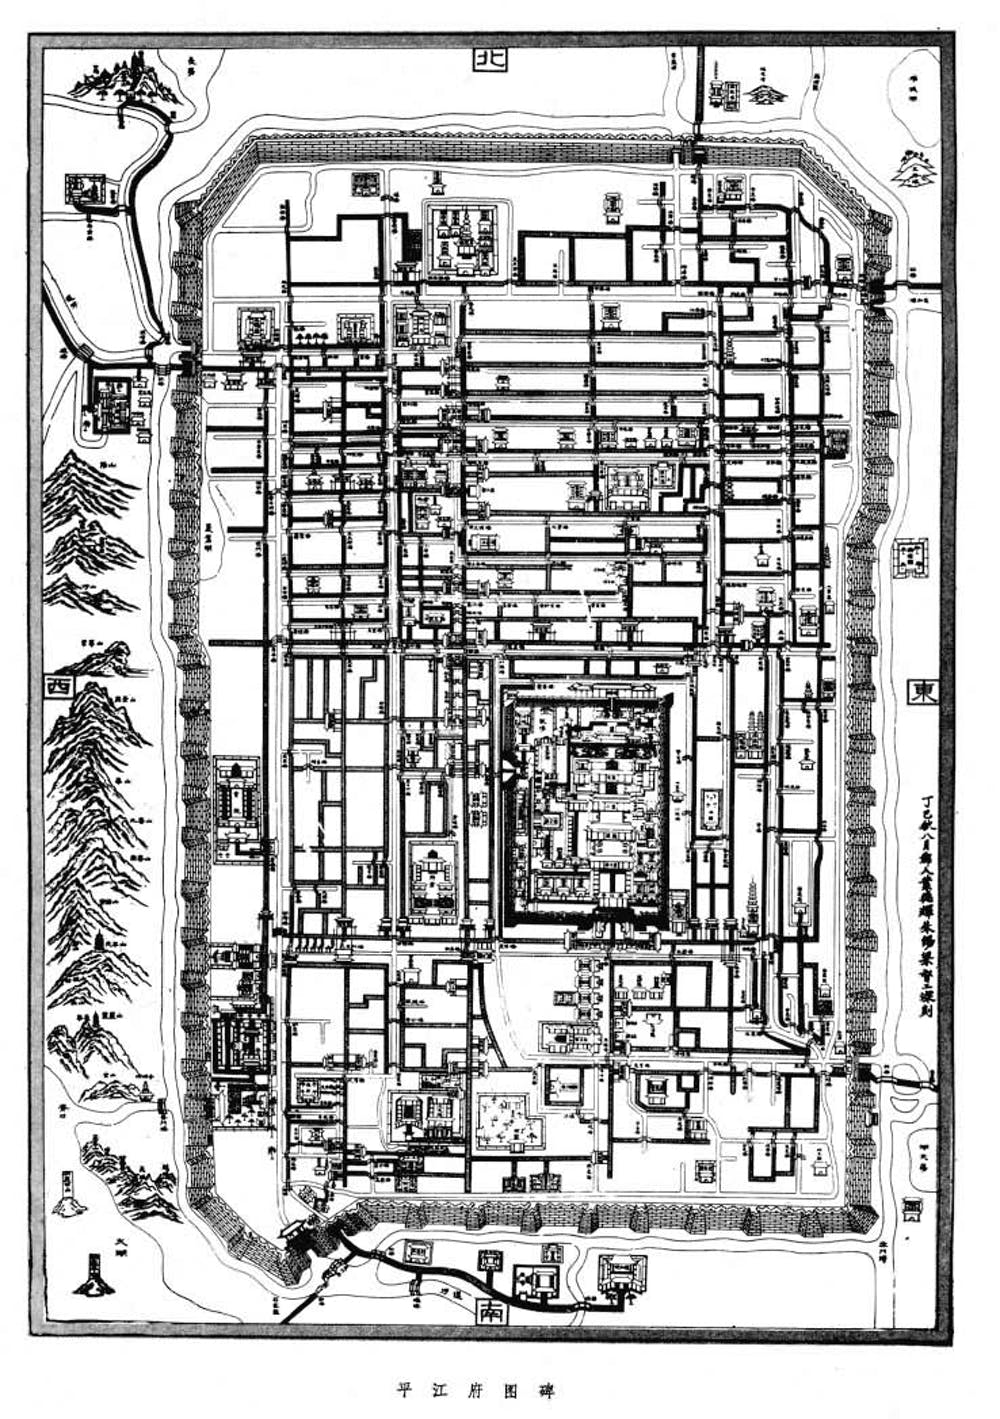 Map of Suzhou in the 13th century, when the city was known as Pingjiang.